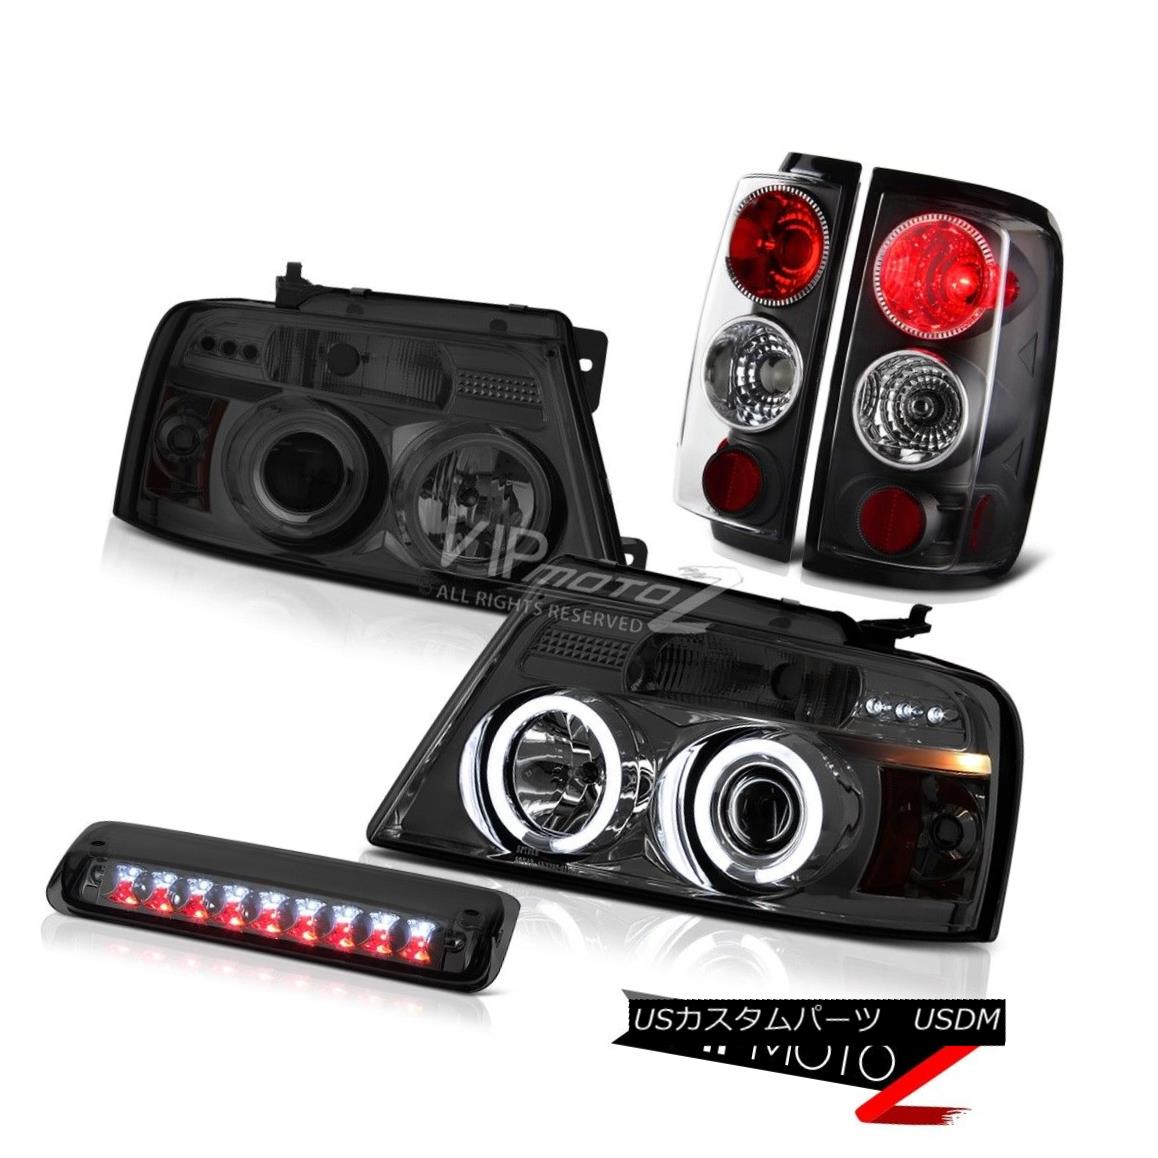 テールライト 04-08 Ford F150 XLT Roof Cab Light Headlamps Infinity Black Taillights Altezza 04-08 Ford F150 XLTルーフキャブライトヘッドランプInfinity Black Taillights Altezza